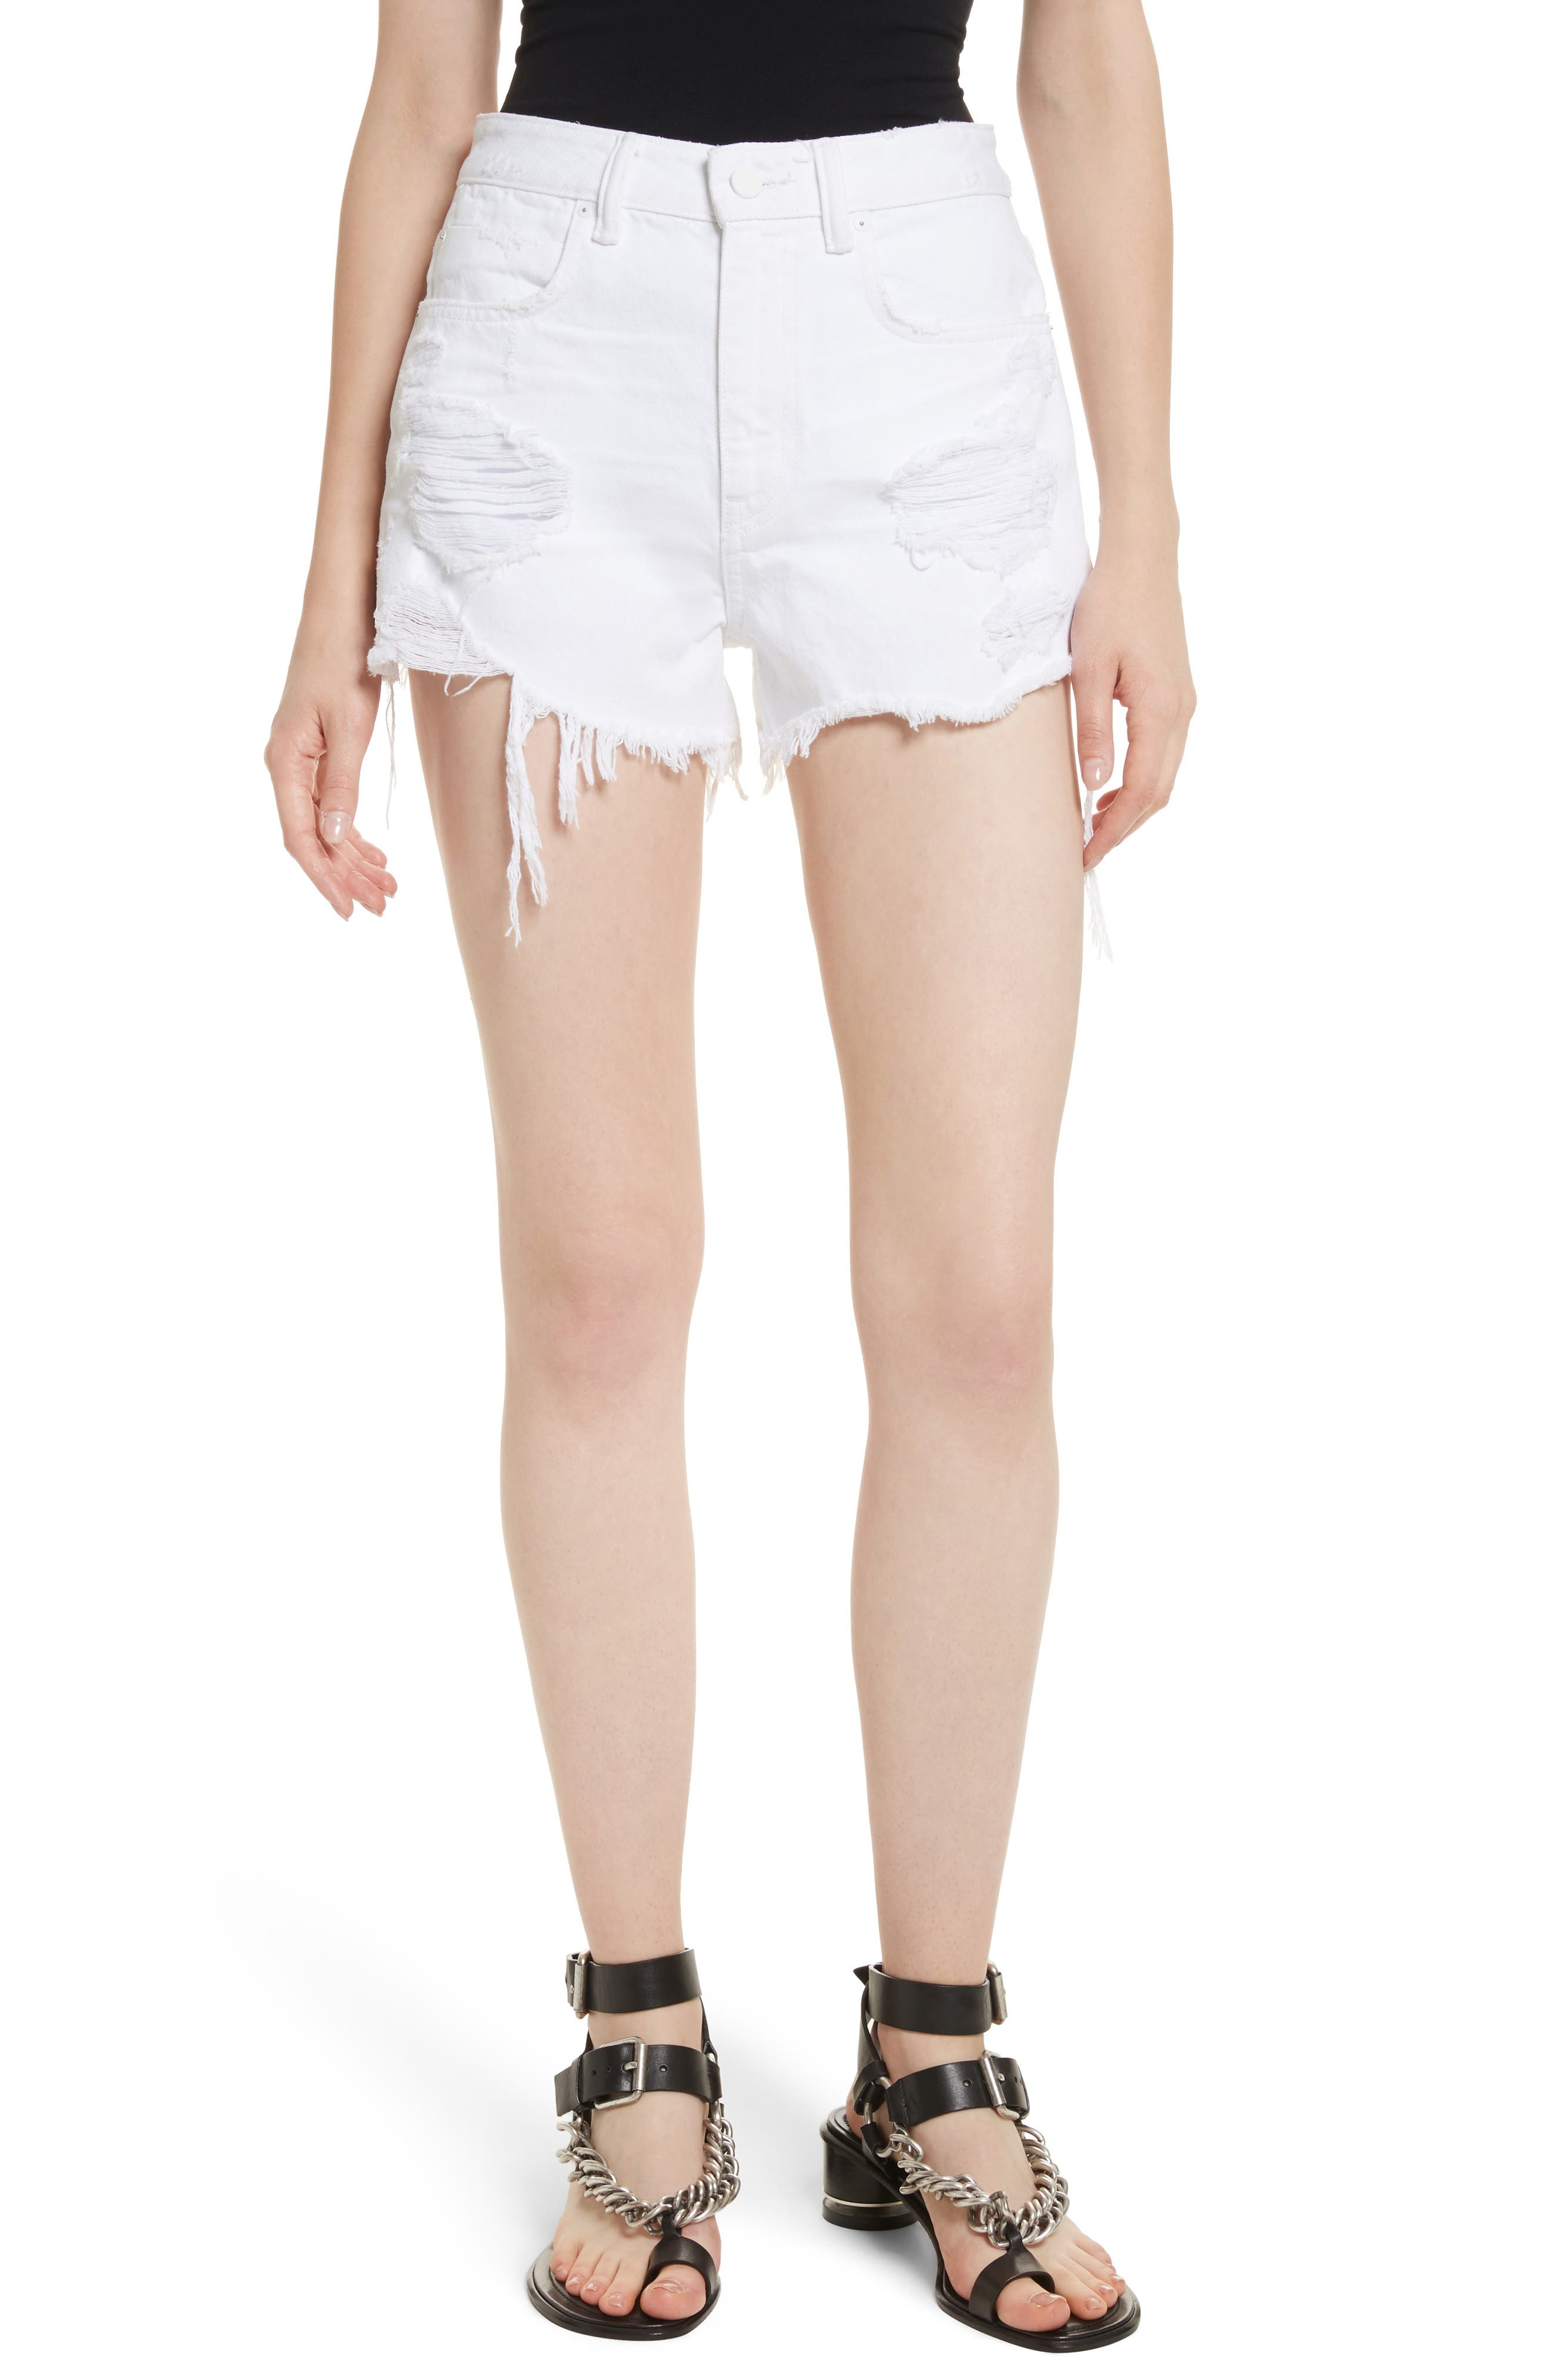 T by Alexander Wang Bite White Ripped Denim Shorts